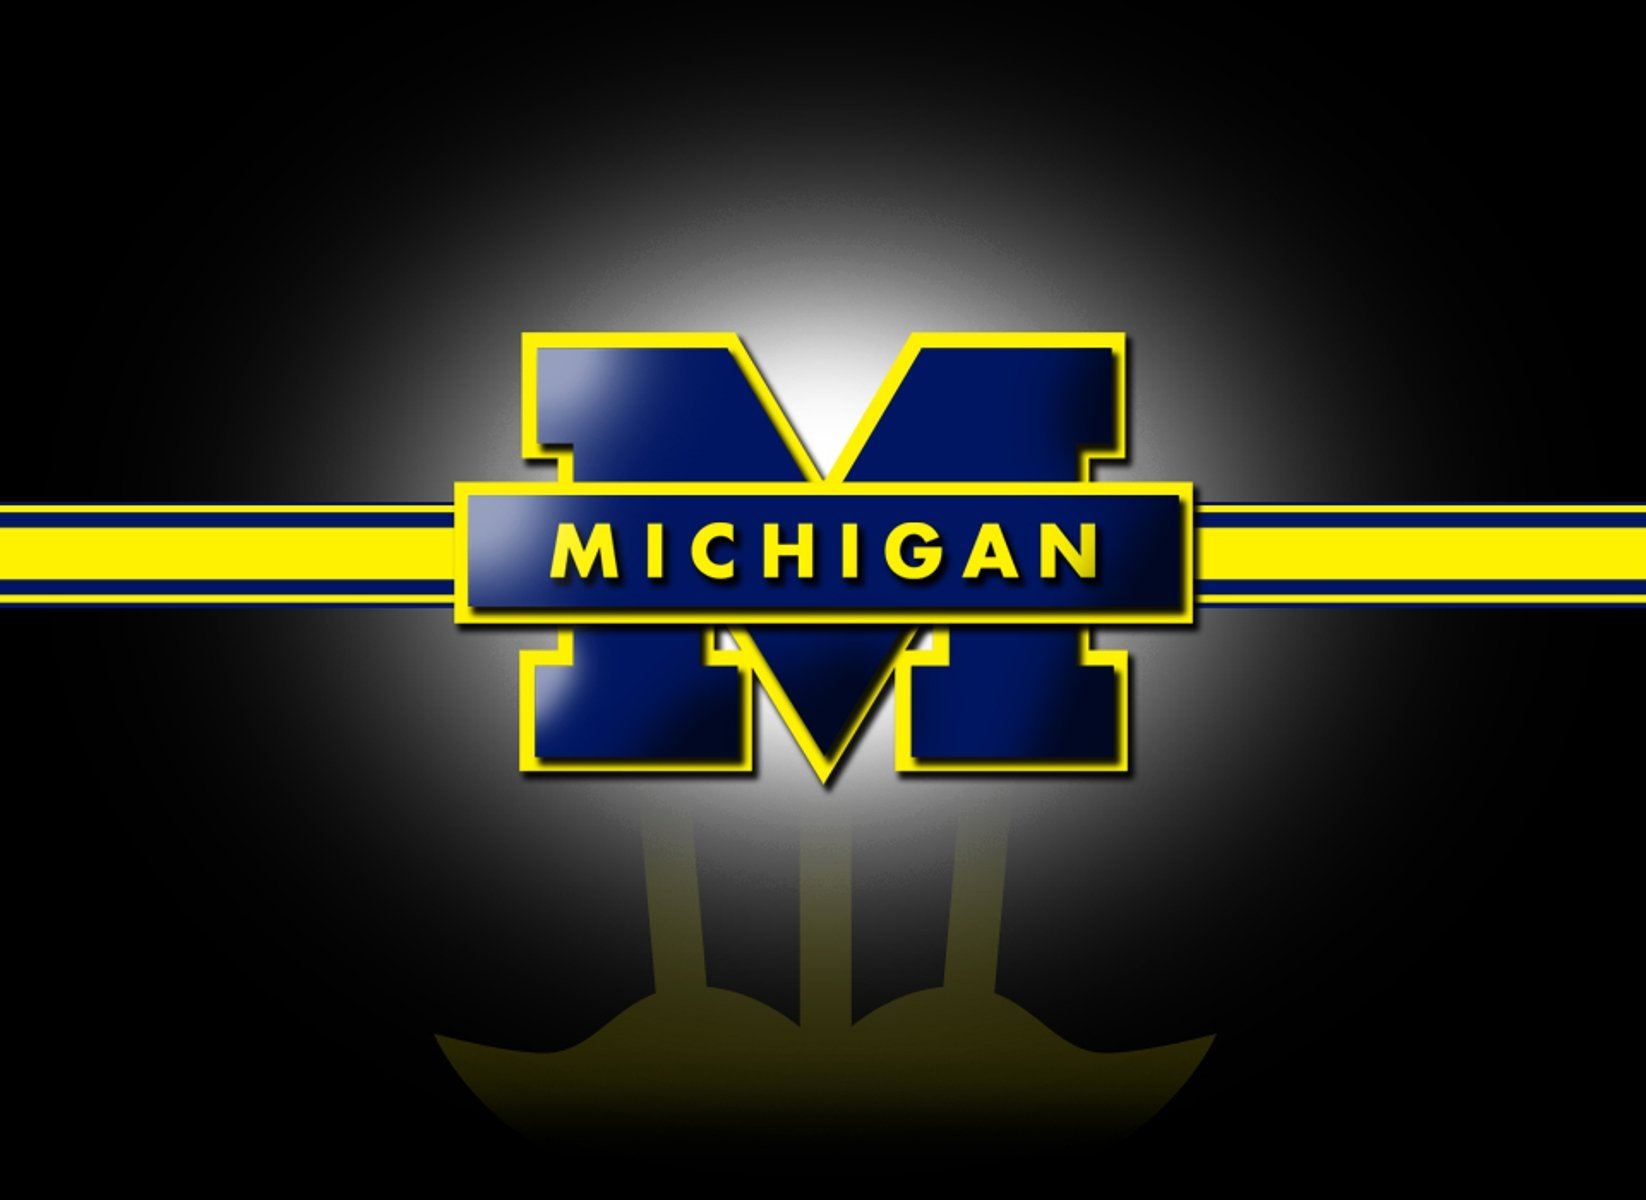 Awesome Michigan Wolverines Wallpaper: MICHIGAN WOLVERINES College Football Wallpaper